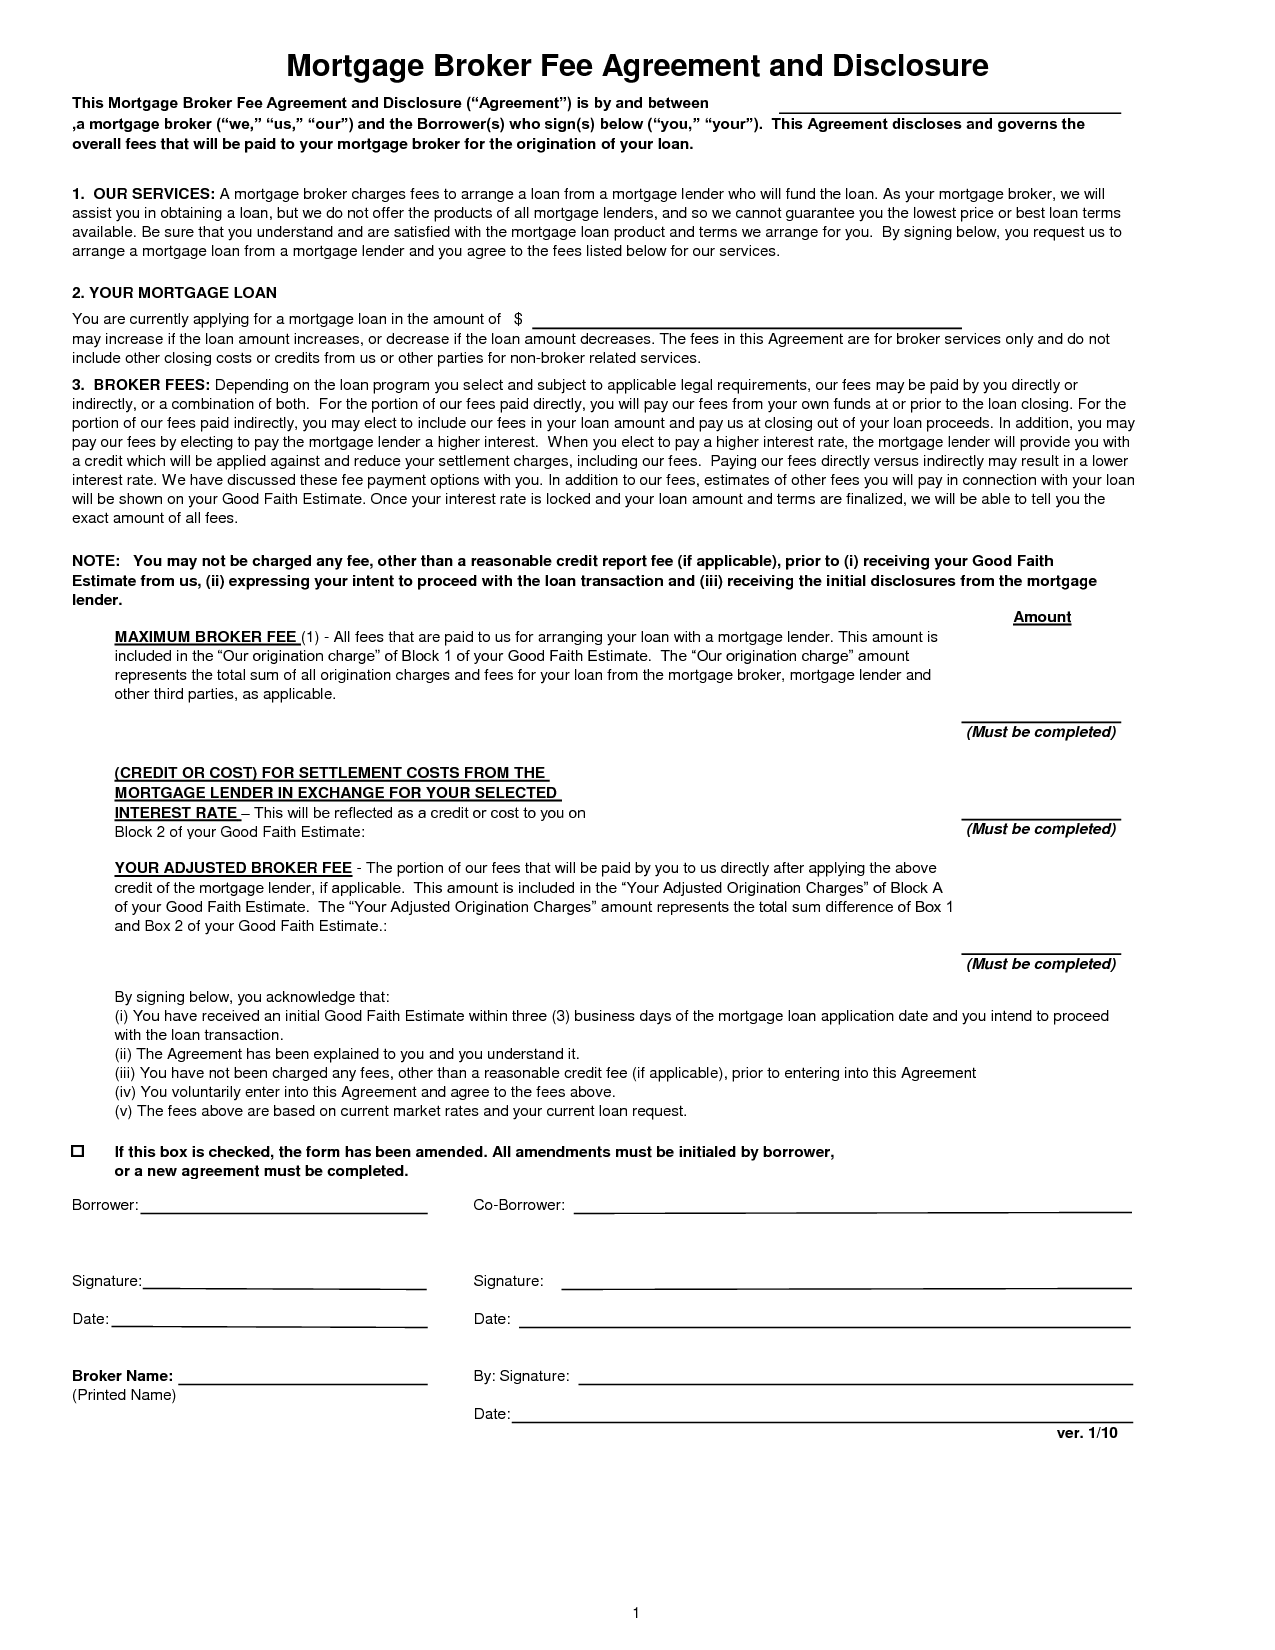 They are either providing this form, or you will have to supply one of your own. Private Mortgage Contract Template Free Printable Documents Rental Agreement Templates Mortgage Agreement Contract Template